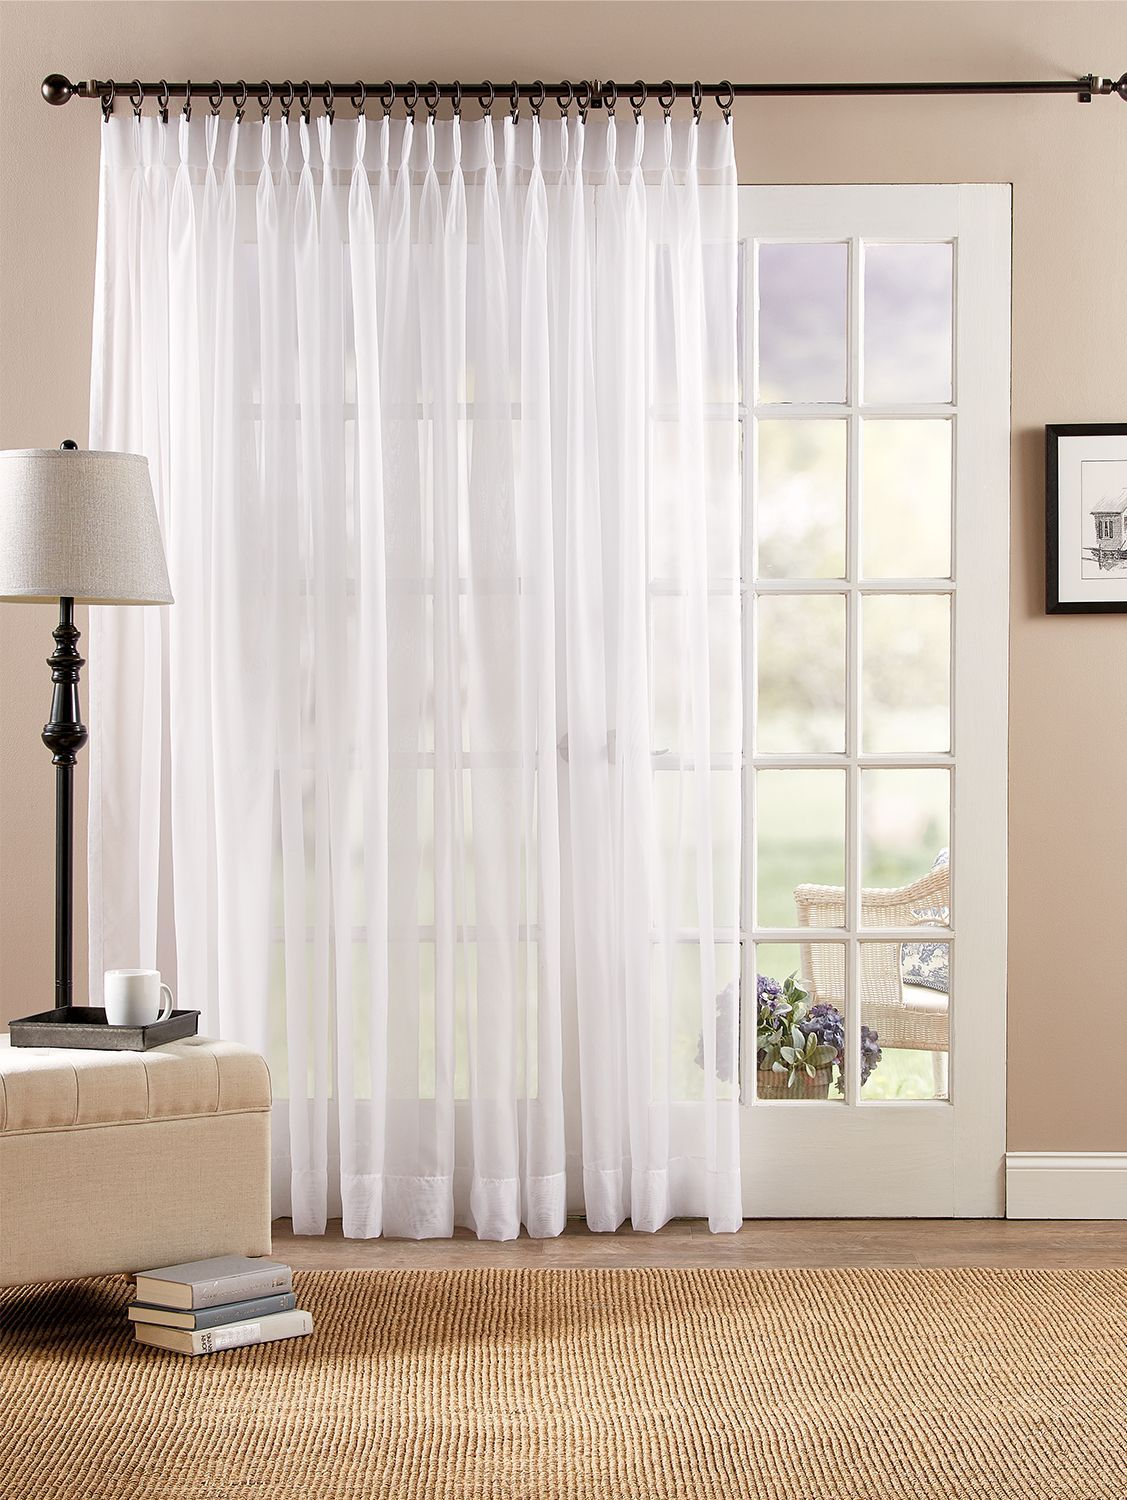 Classic Sheers Pinch Pleat Patio Panel In 2020 White Curtains Living Room Sheers Curtains Living Room Curtains Living